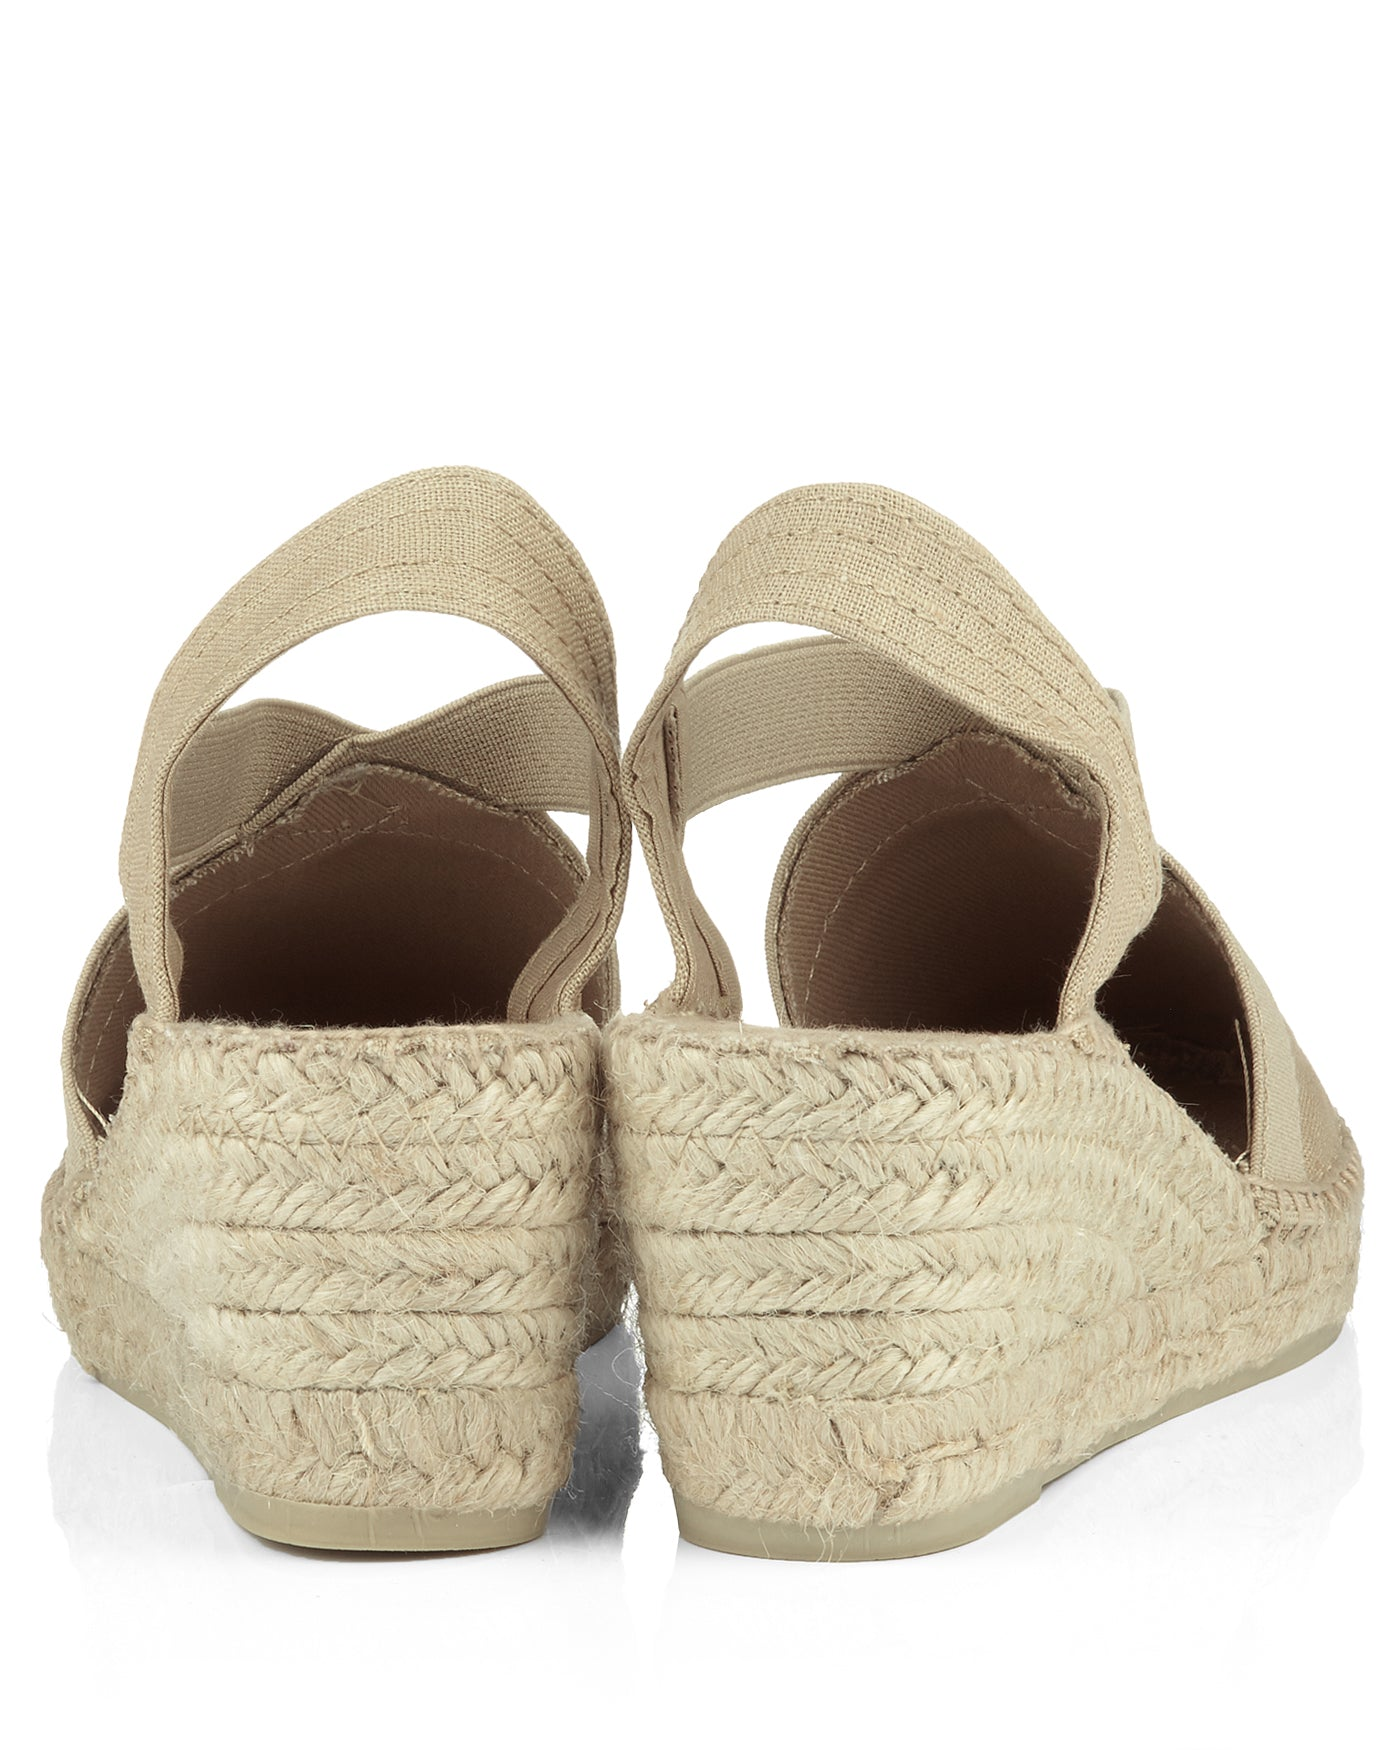 Ter Stone Linen Wedge Espadrille - The Espadrille Hut